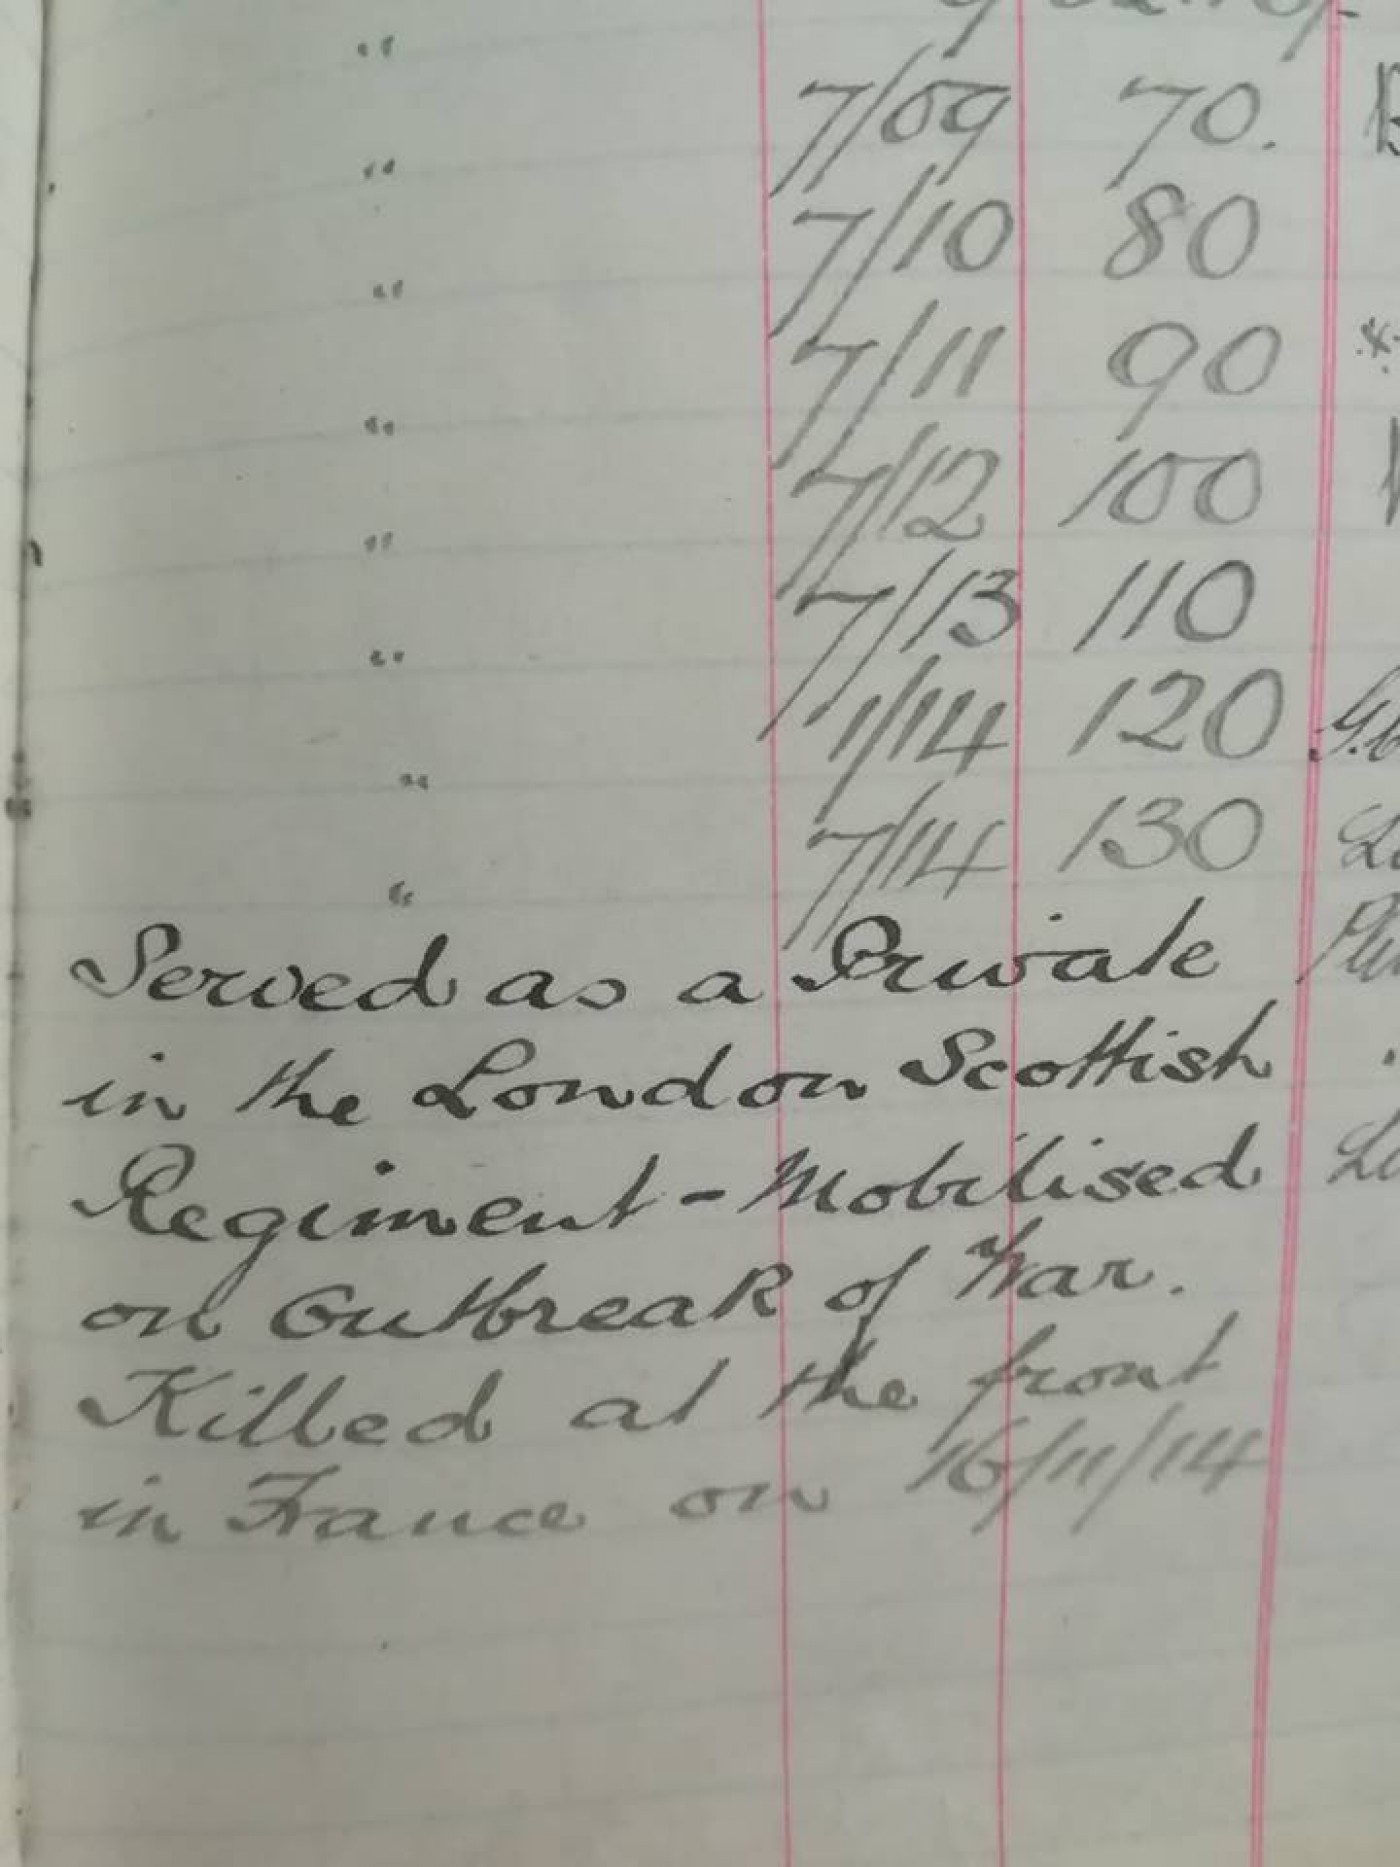 William Greig's entry in the staff bible